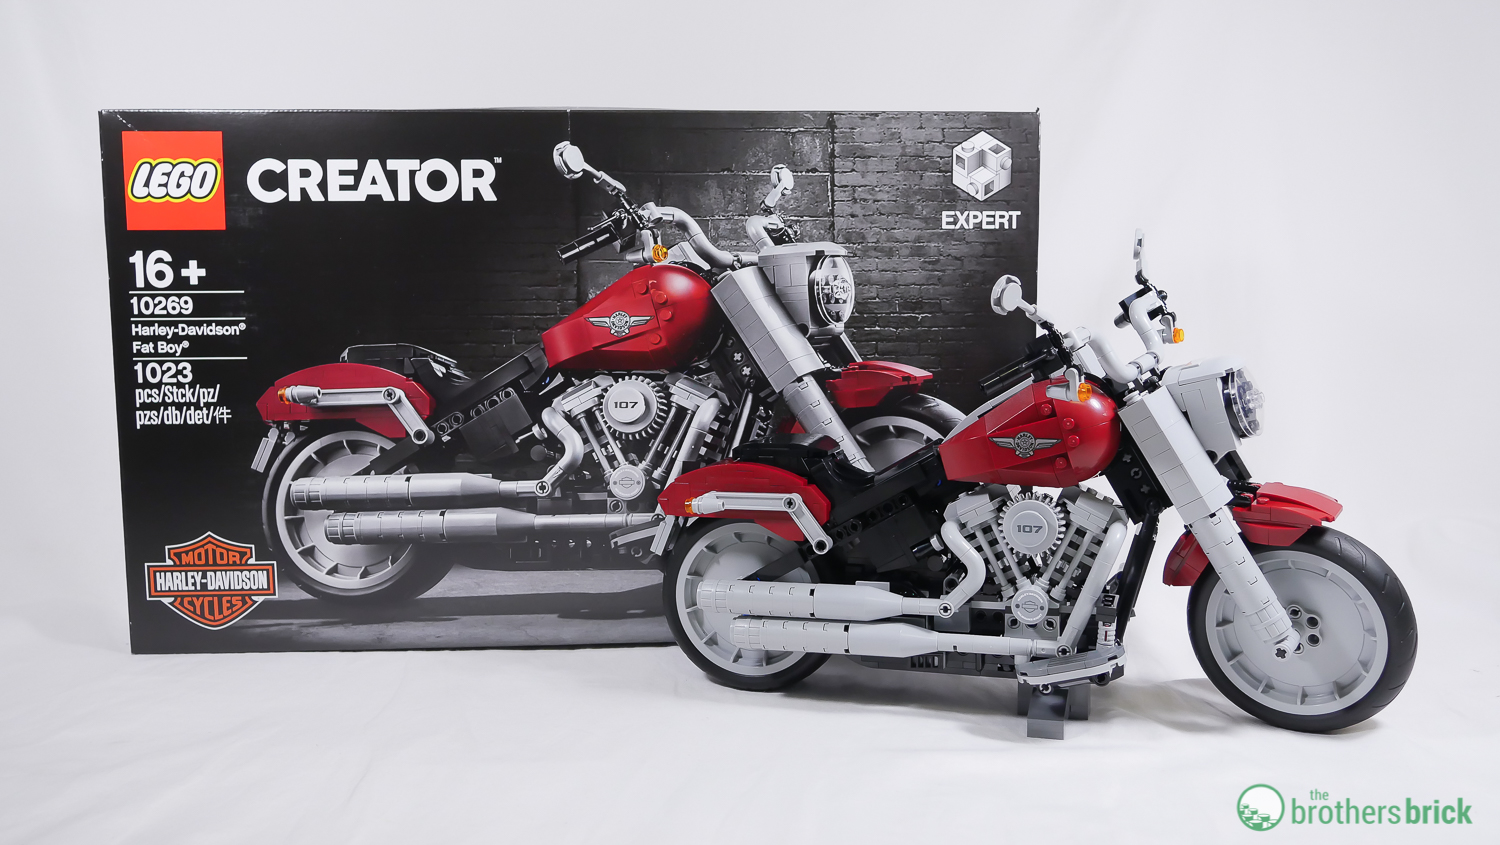 Going full throttle with LEGO Creator Expert 10269 Harley